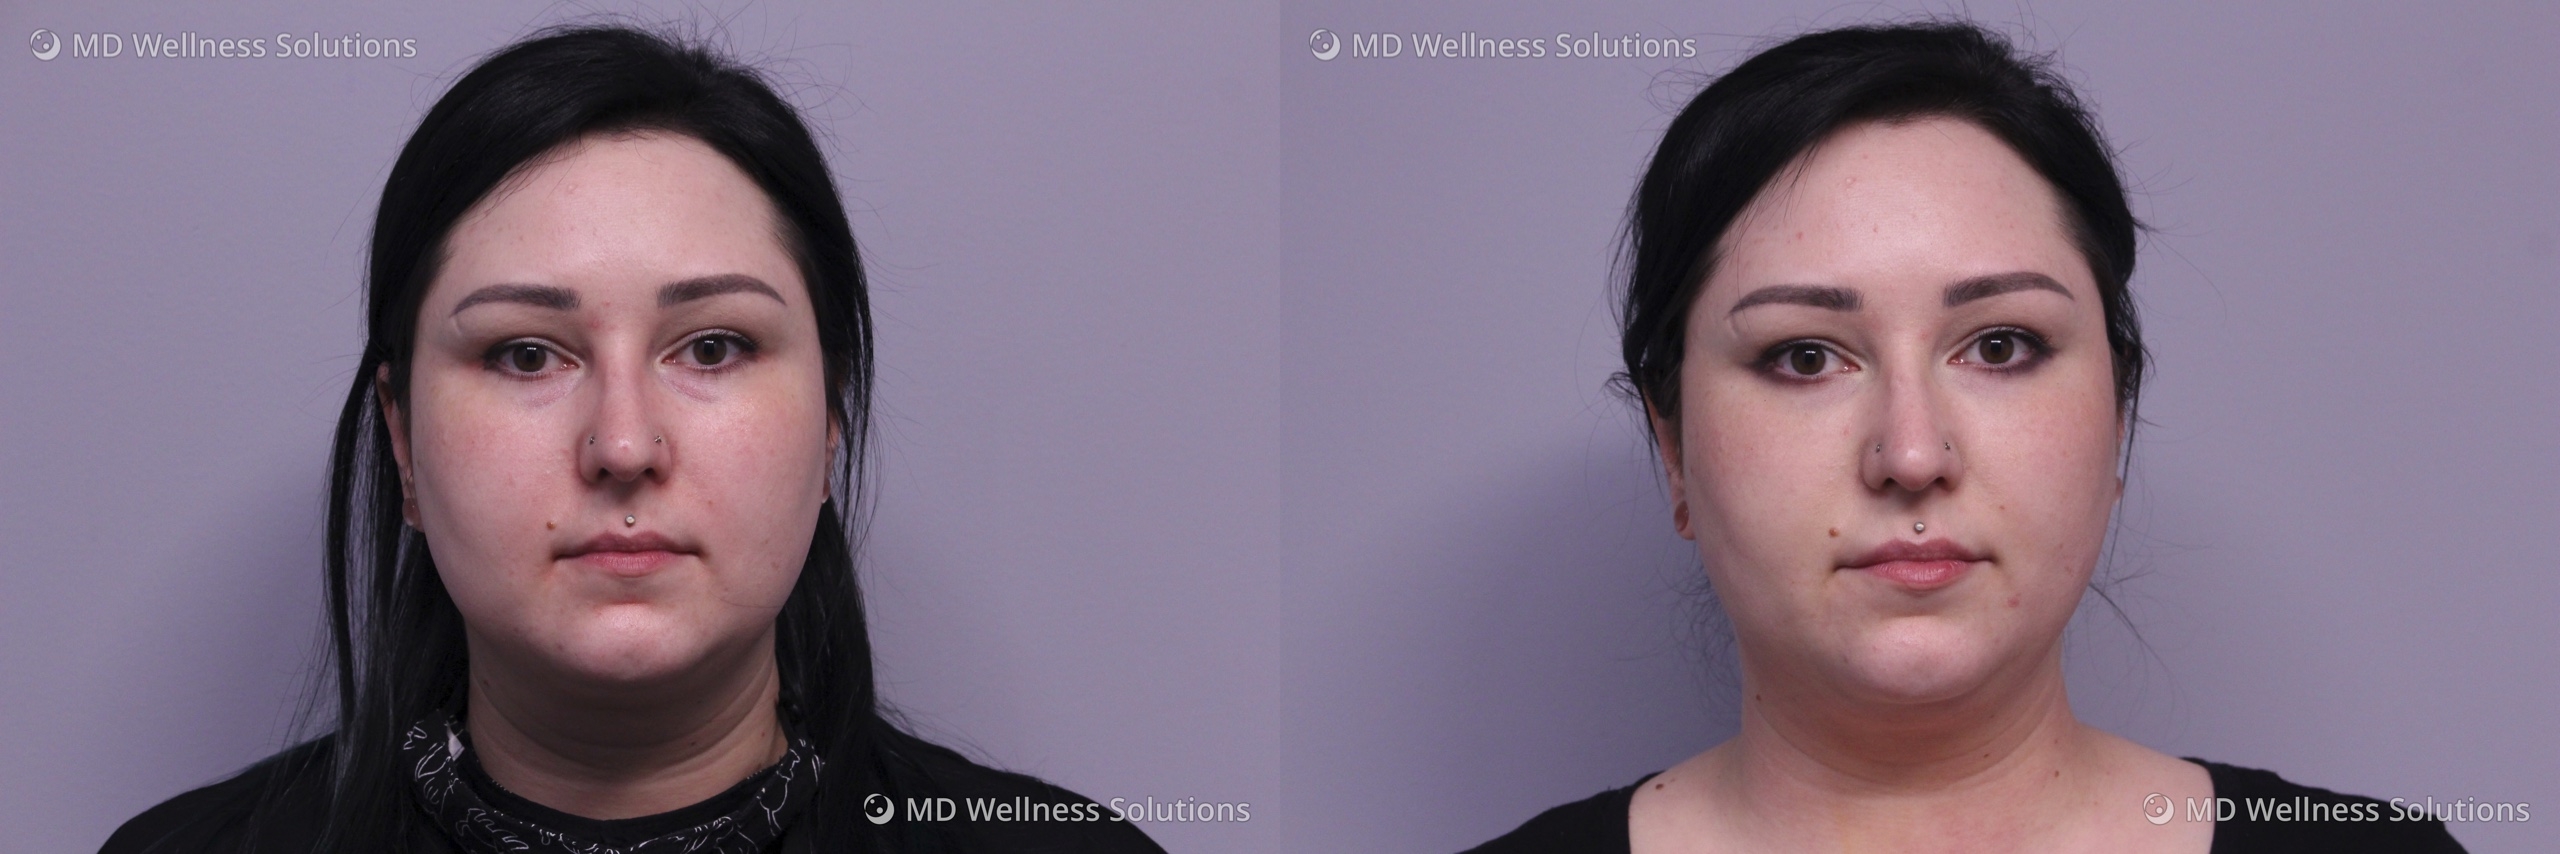 25-34 year old woman before and after dermal filler treatment